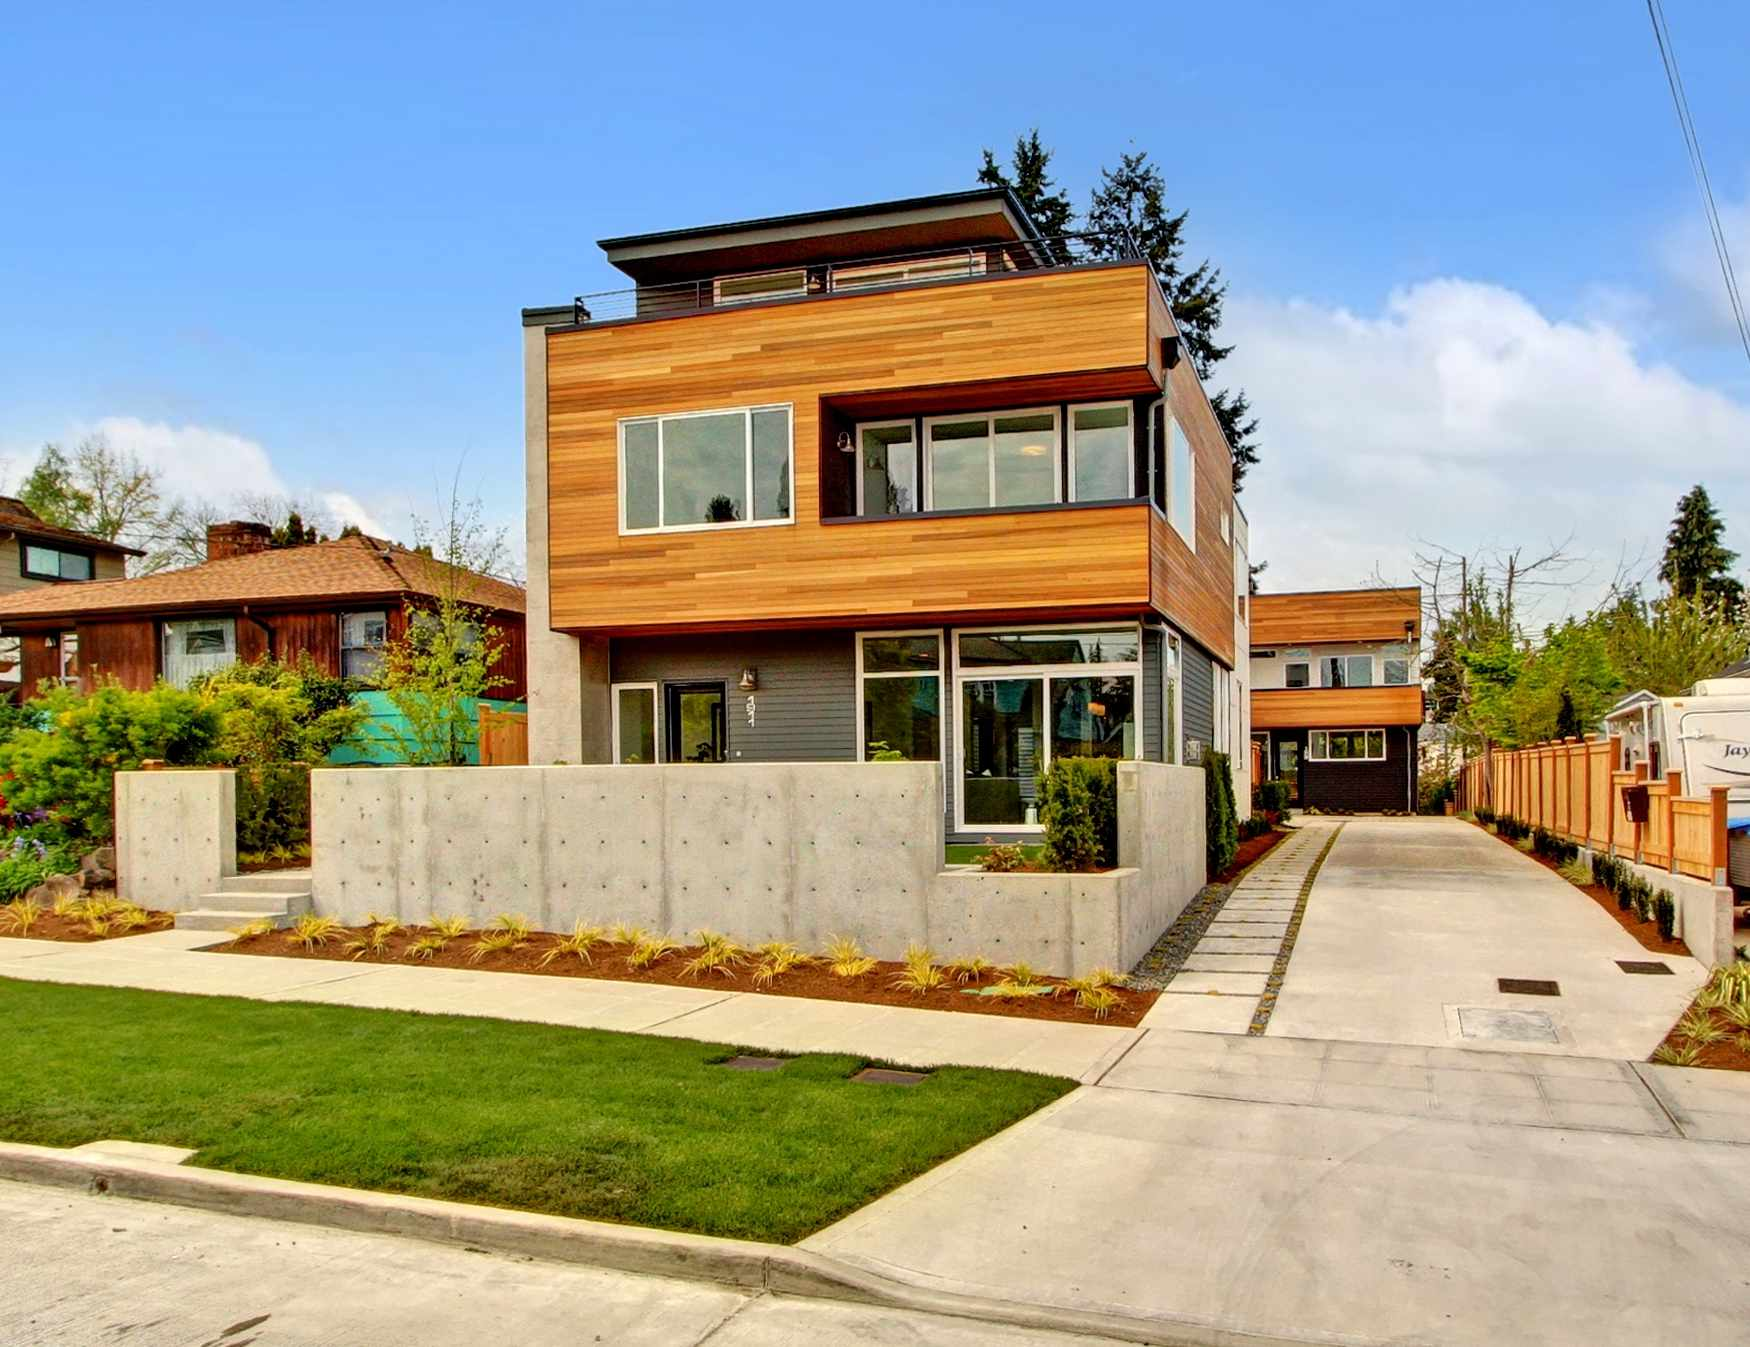 Best 40 seattle modern homes design ideas of seattle for Modern style houses for sale